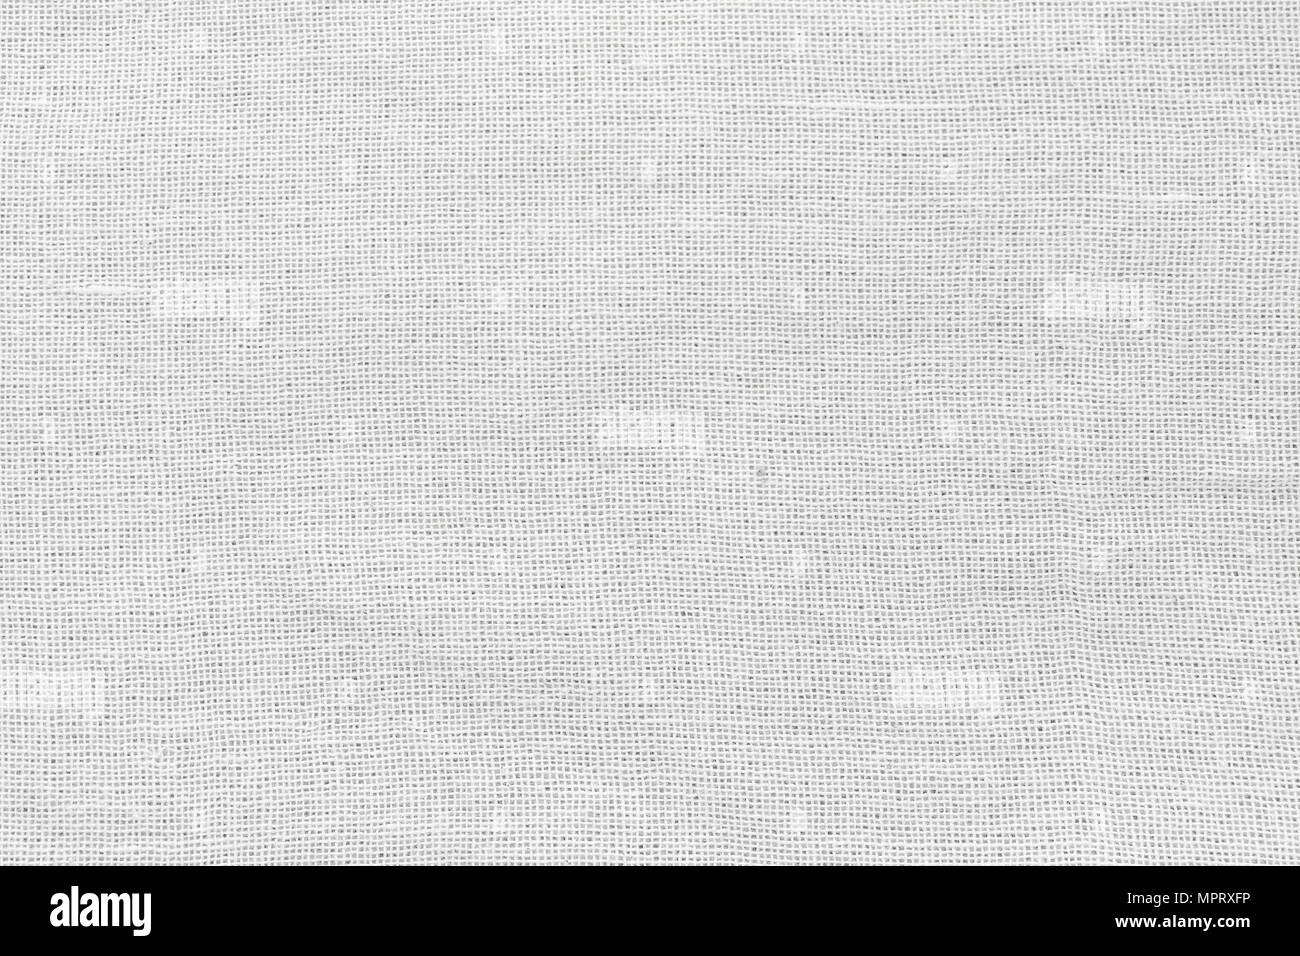 White Cotton Fabric Cloth Background High Resolution Texture For